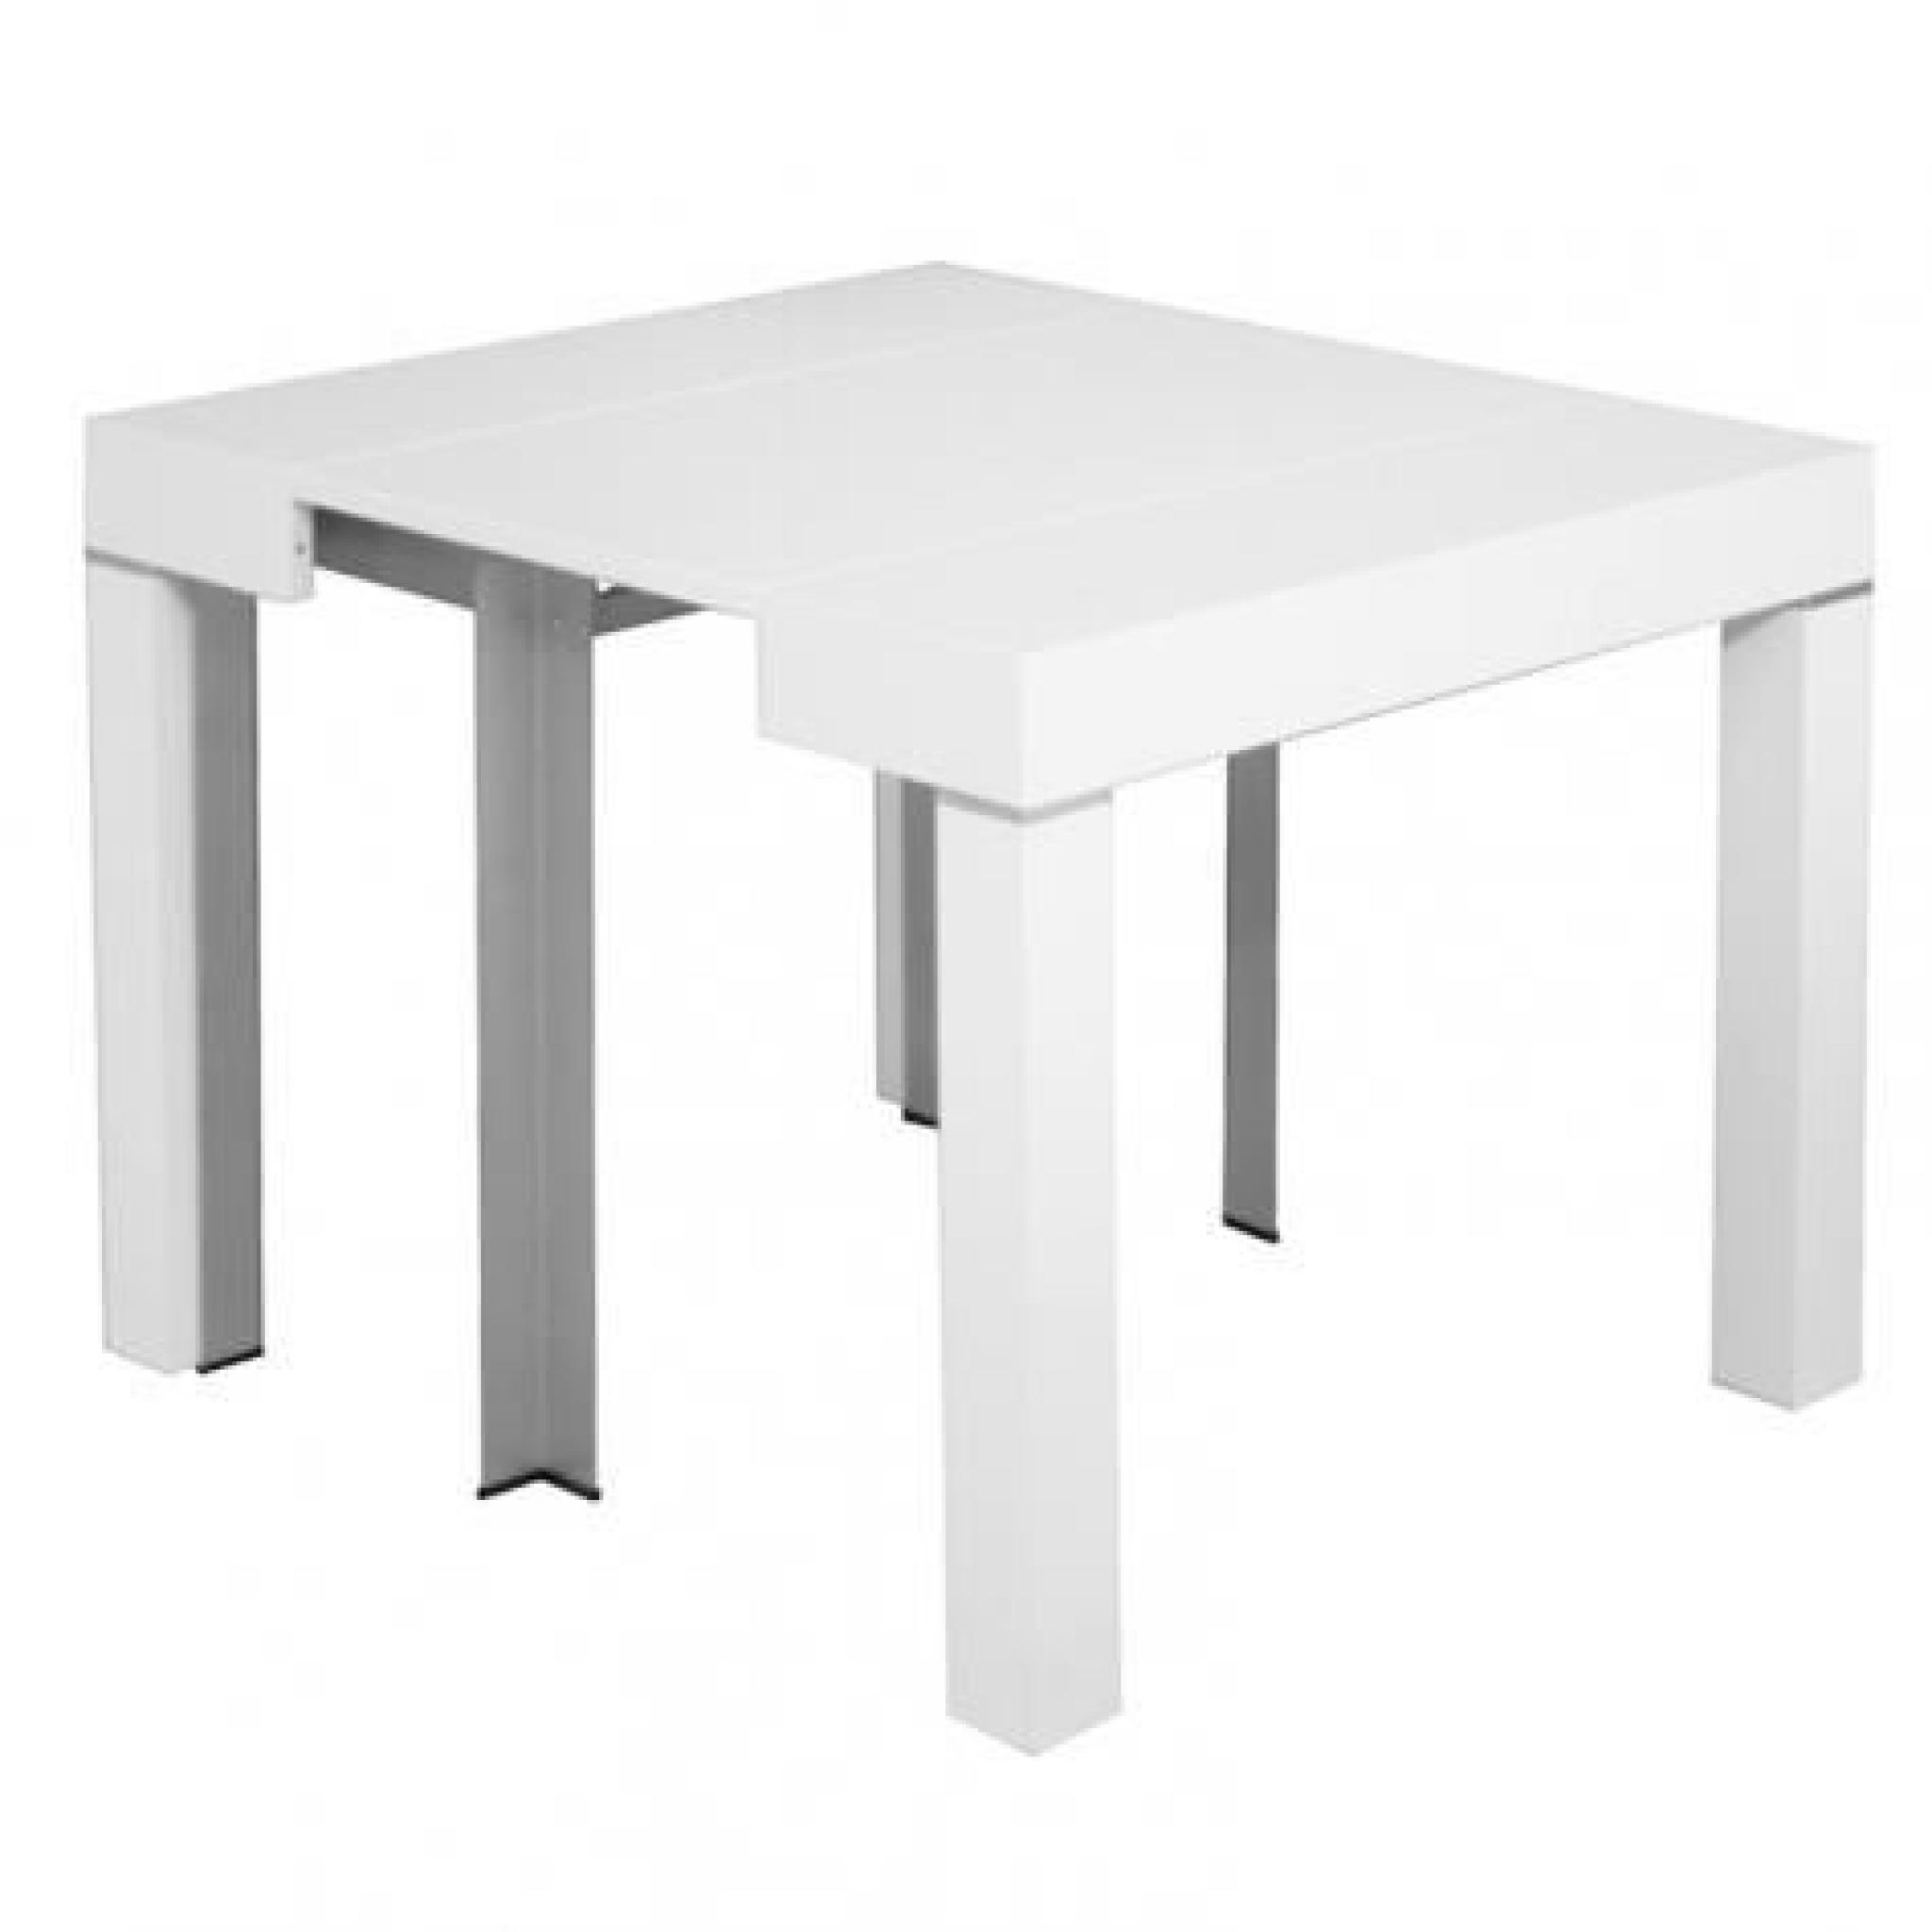 Table console extensible blanche laqu e 4 rallonges alesia for Table salle a manger blanche extensible